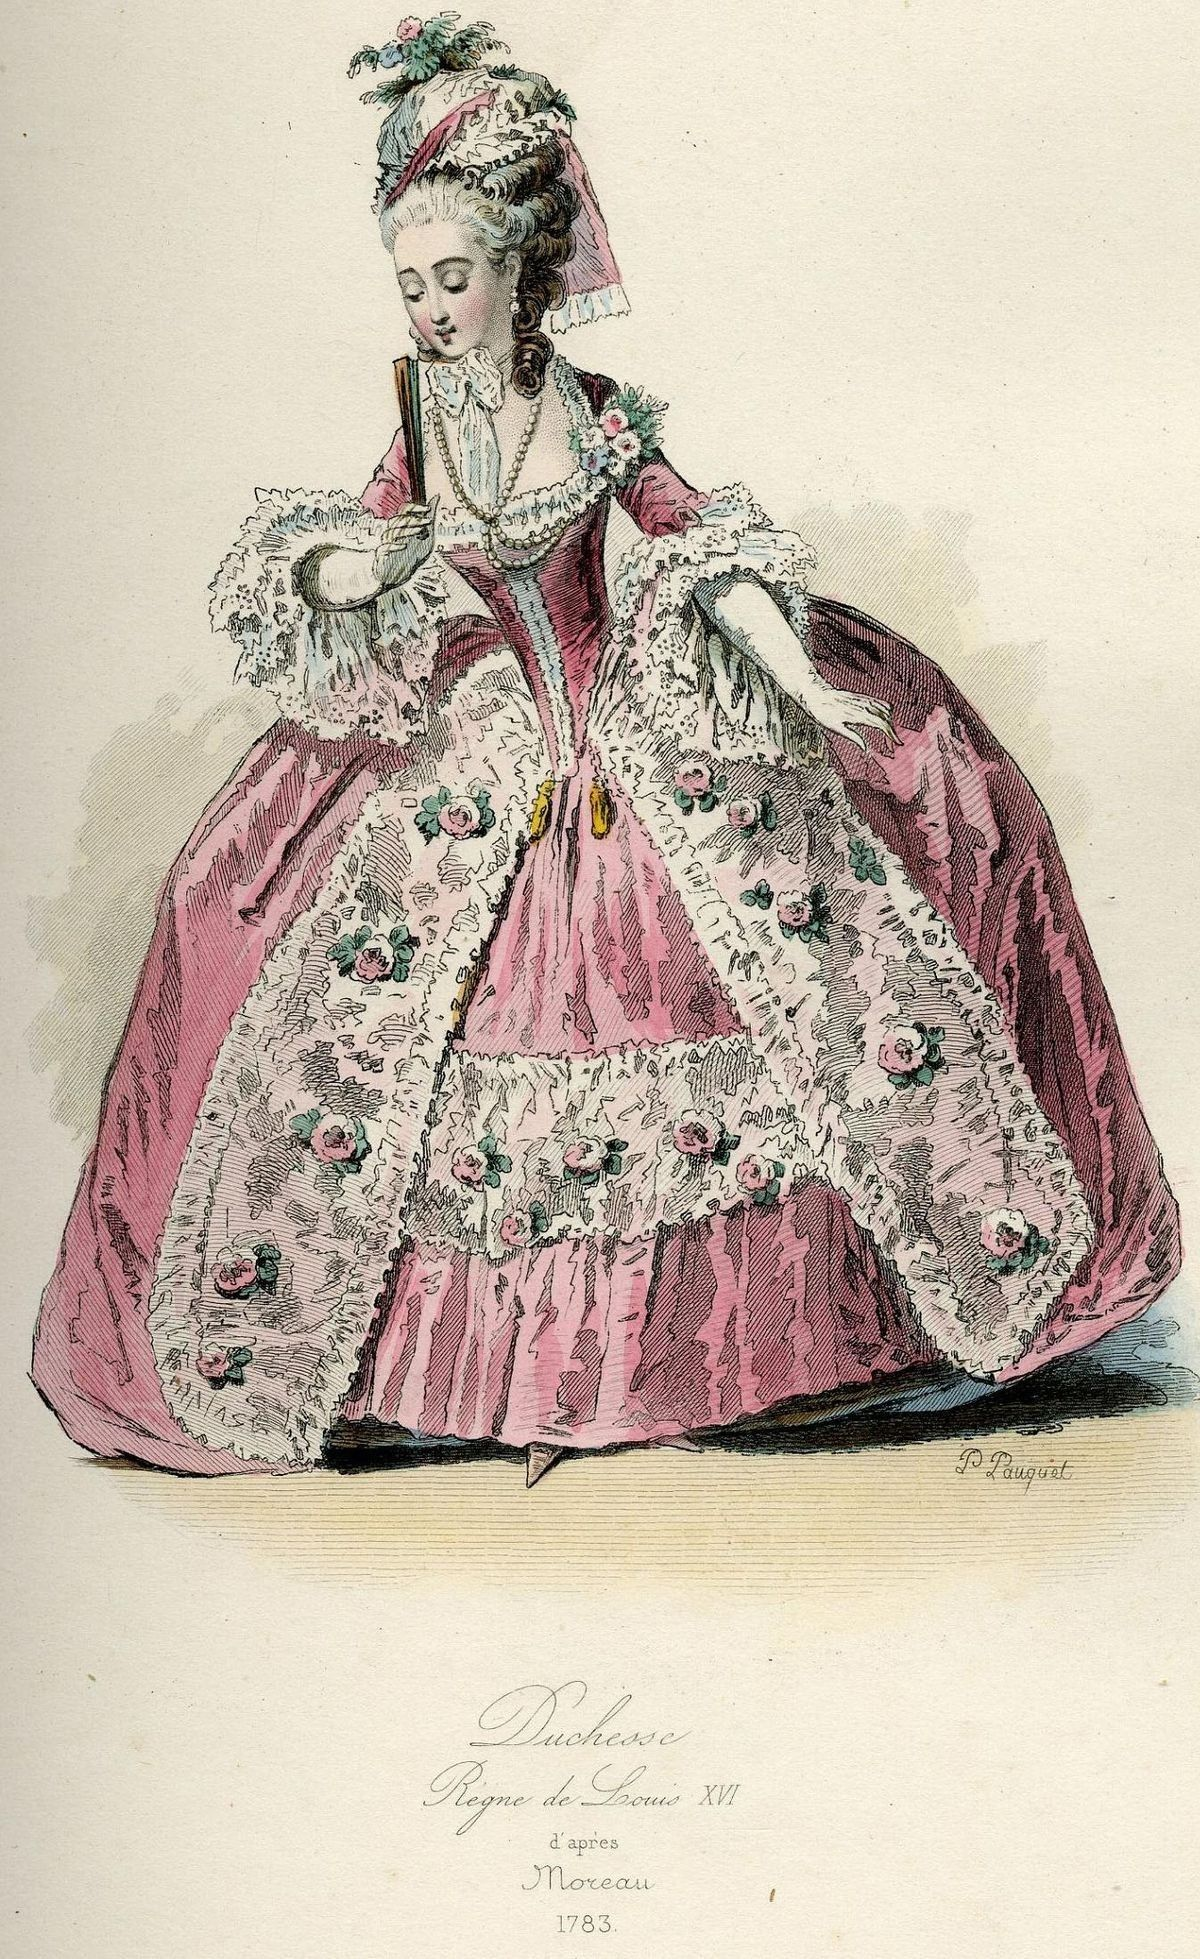 Duchesse, Règne De Louis XVI, D´Après Moreau, 1783 P010077 France. Original lithograph drawn and engraved by Polydore Pauquet. 1864..jpg